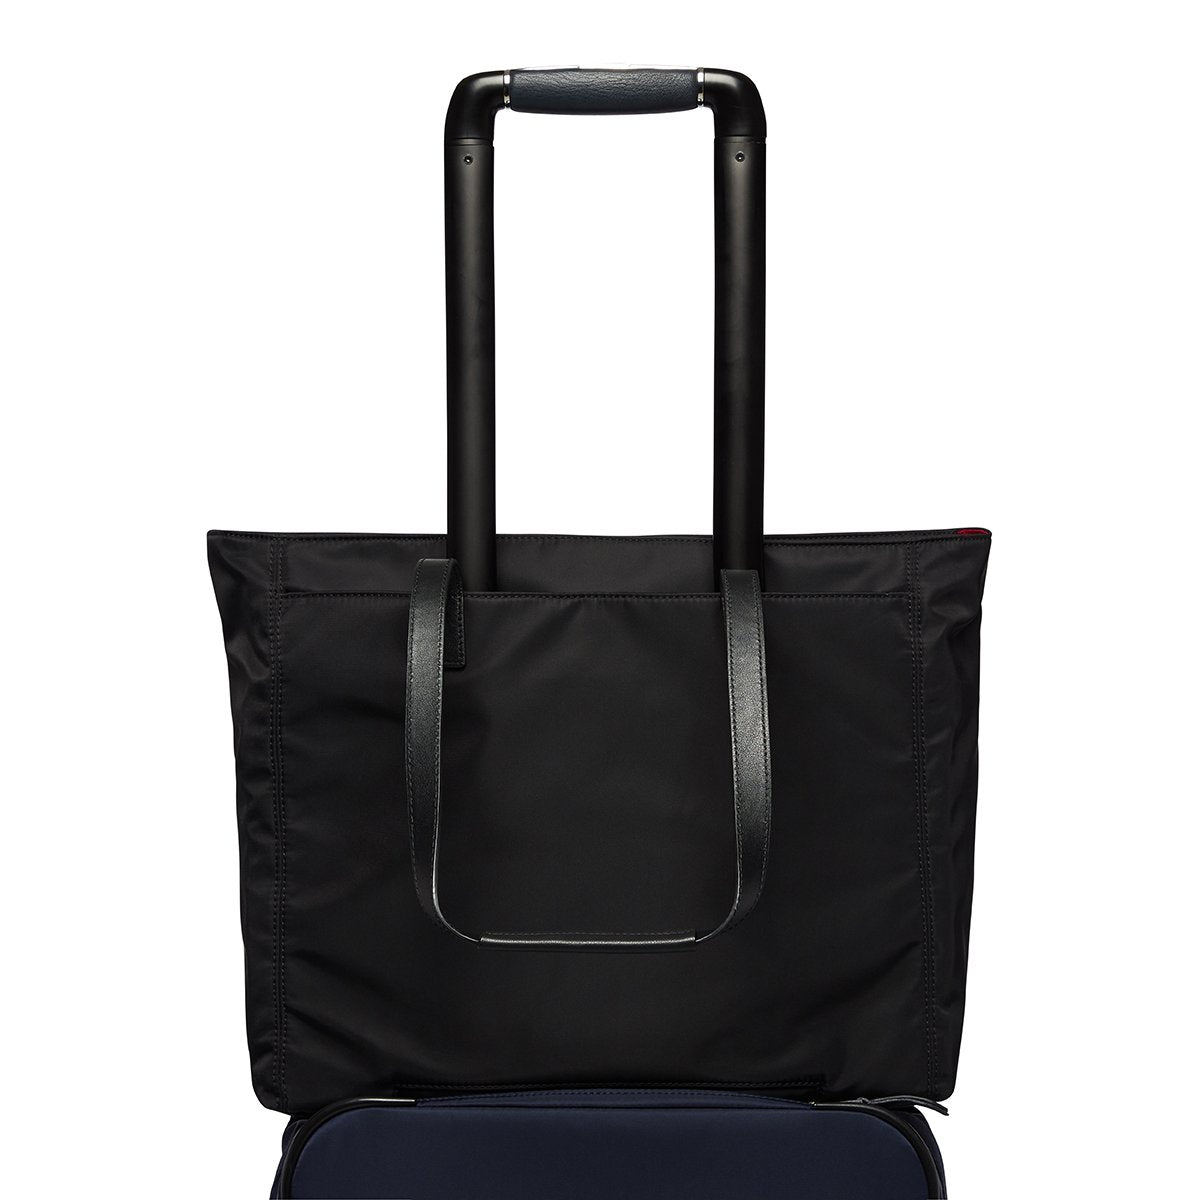 "Grosvenor Place Laptop Tote Bag - 14"" -  Black 